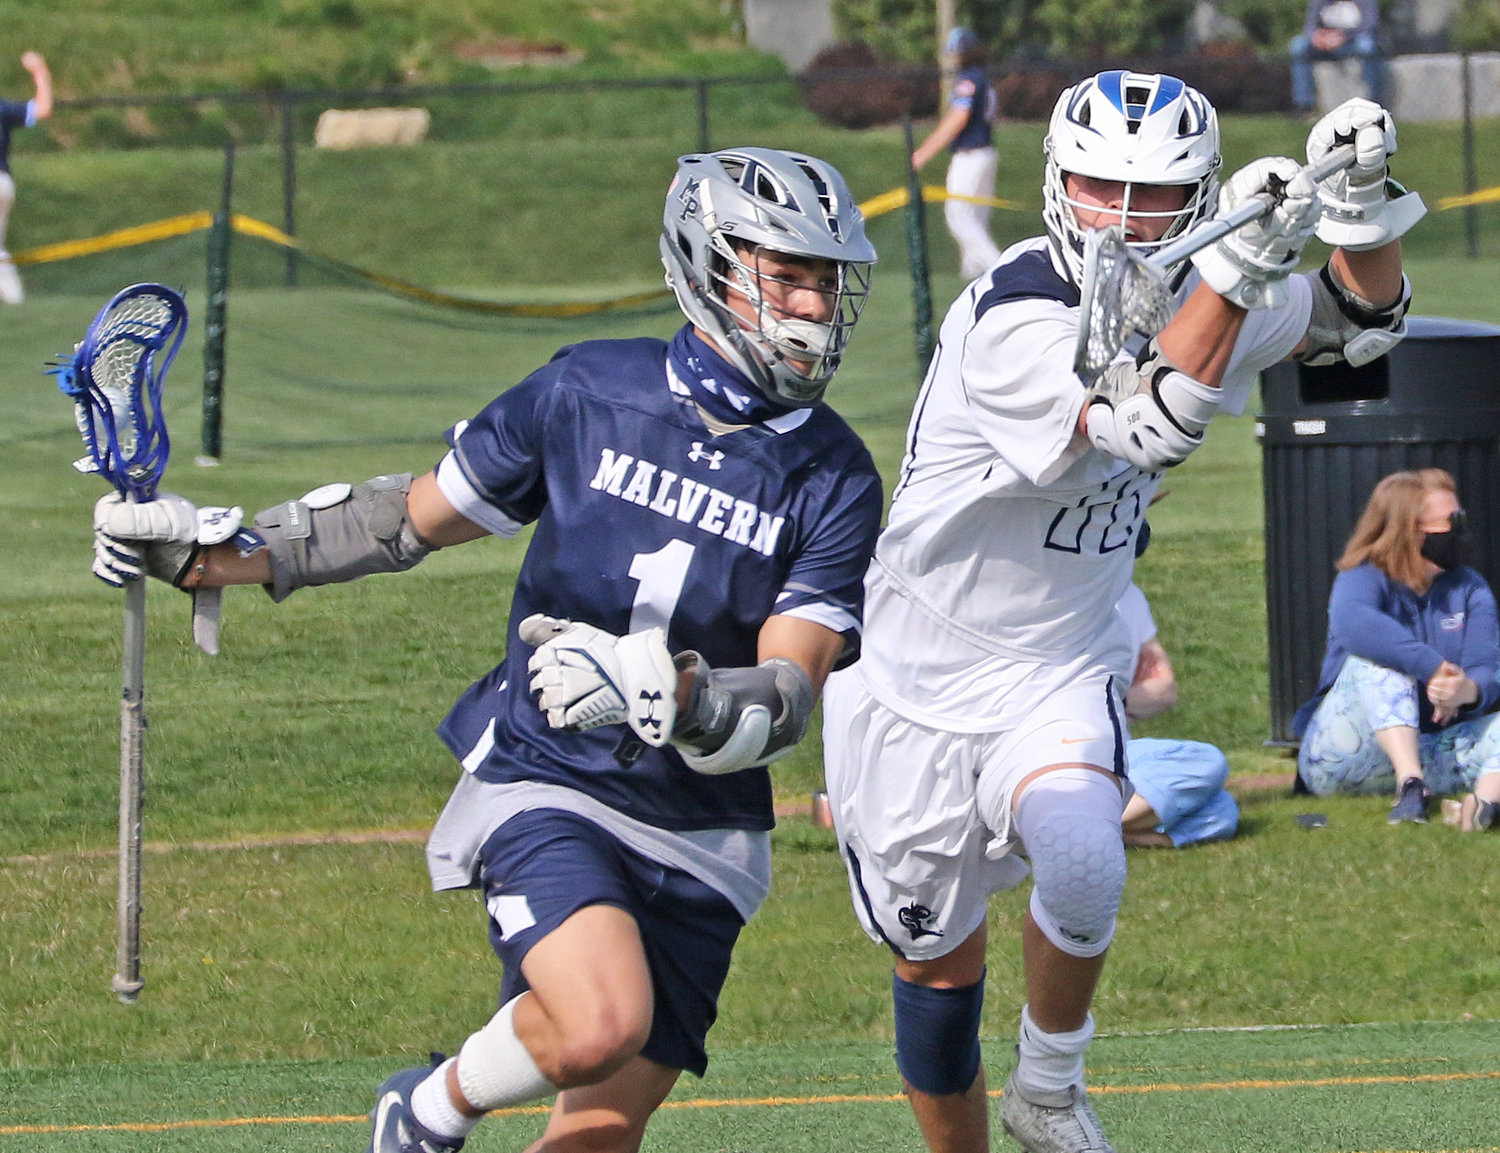 Blue Devils senior Conor Kilfeather (right) is about to bring his stick across in front of Malvern's Nick Potemski in an effort to dislodge the ball. Potemski would avoid the check.  (Photo by Tom Utescher)